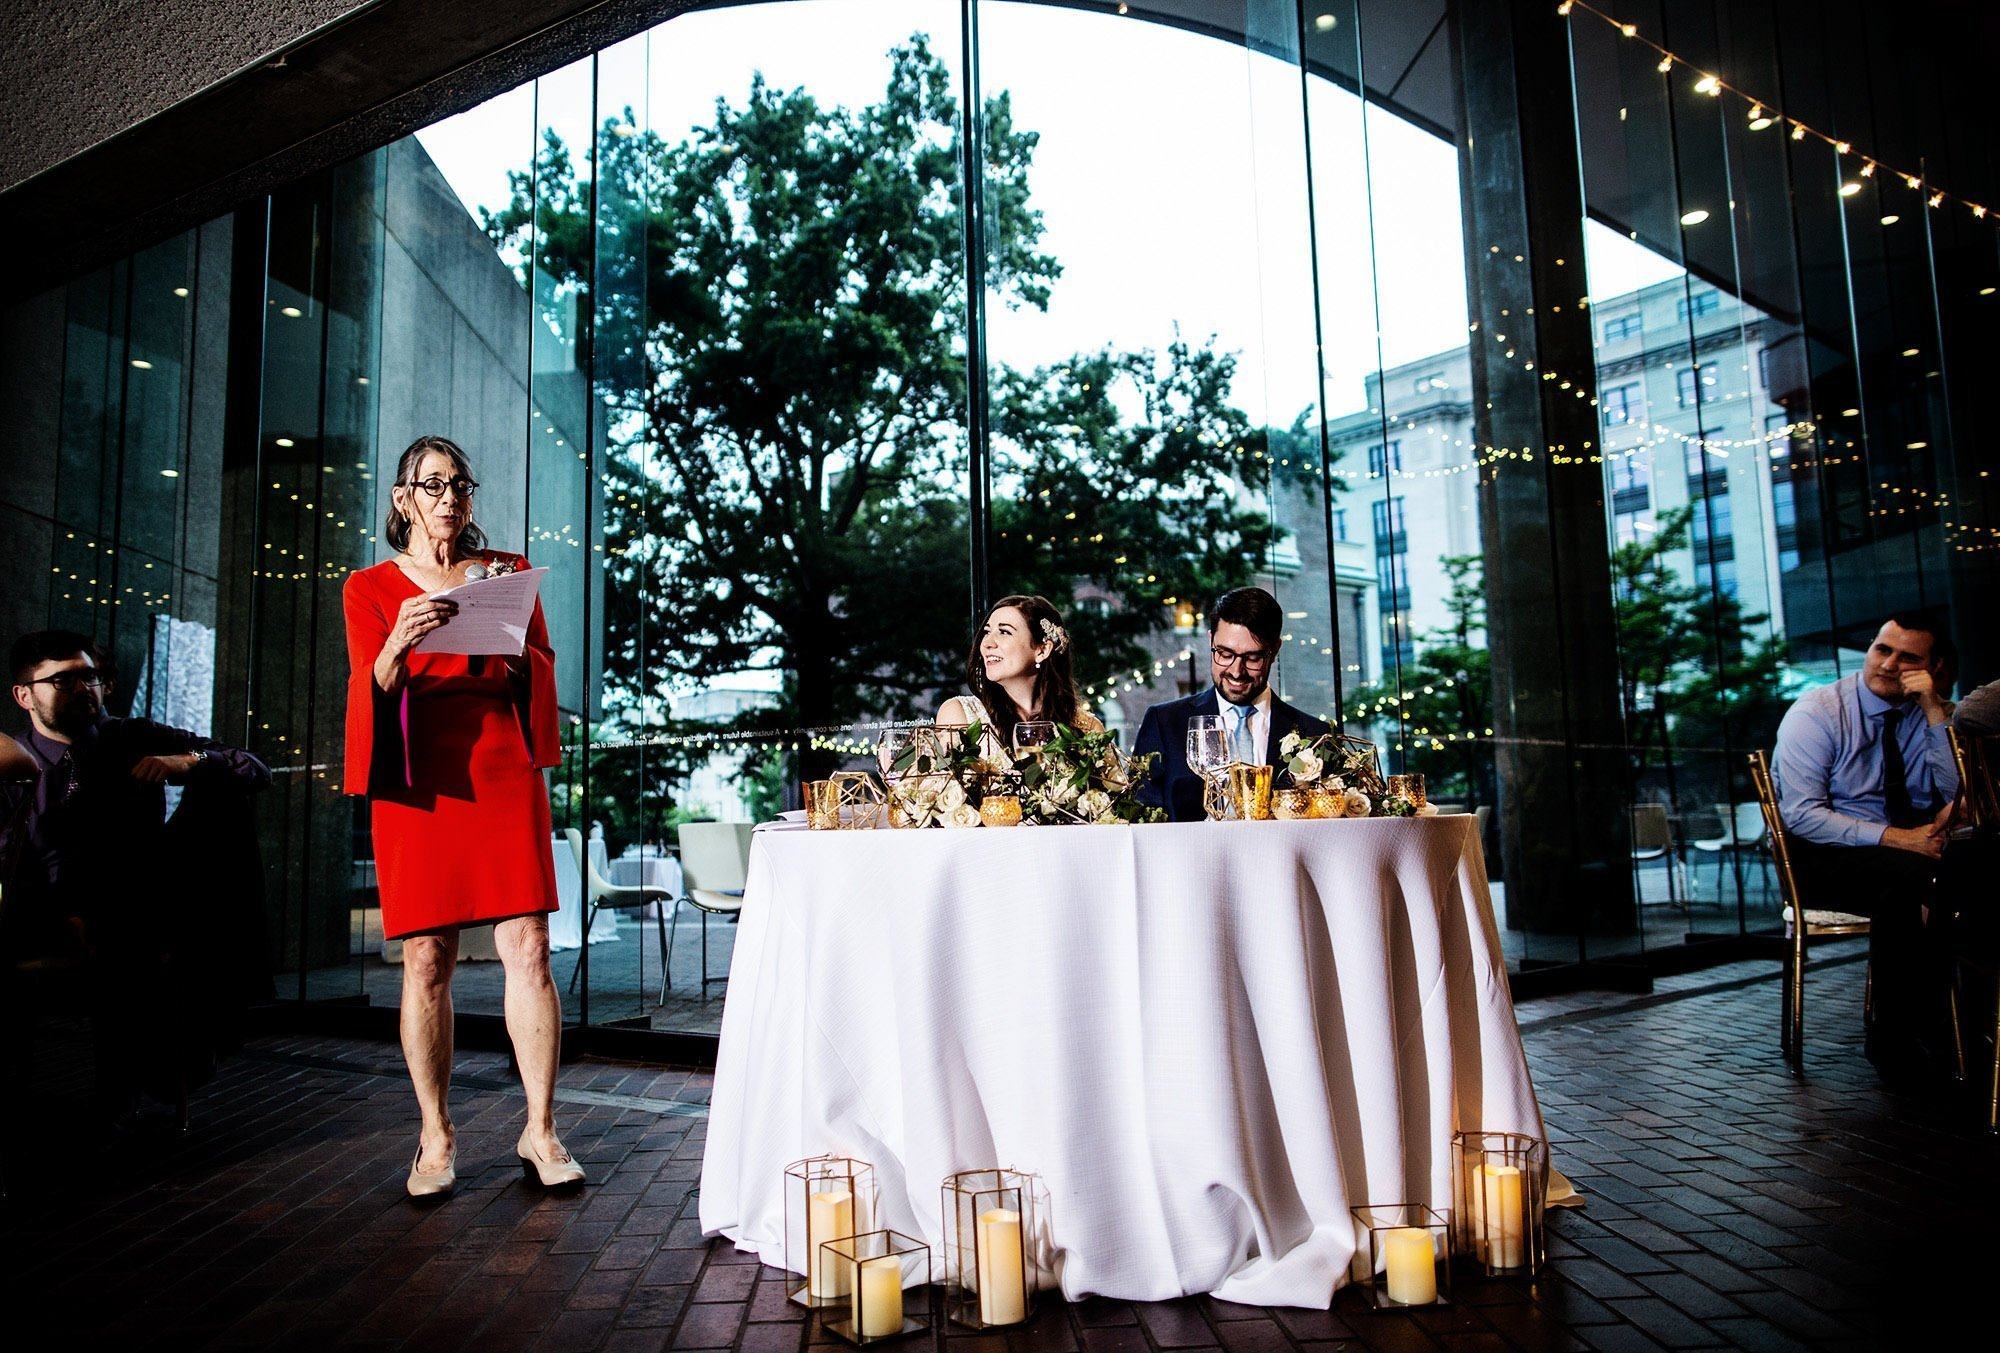 The mother of the bride gives a toast during the American Institute of Architects Wedding reception.